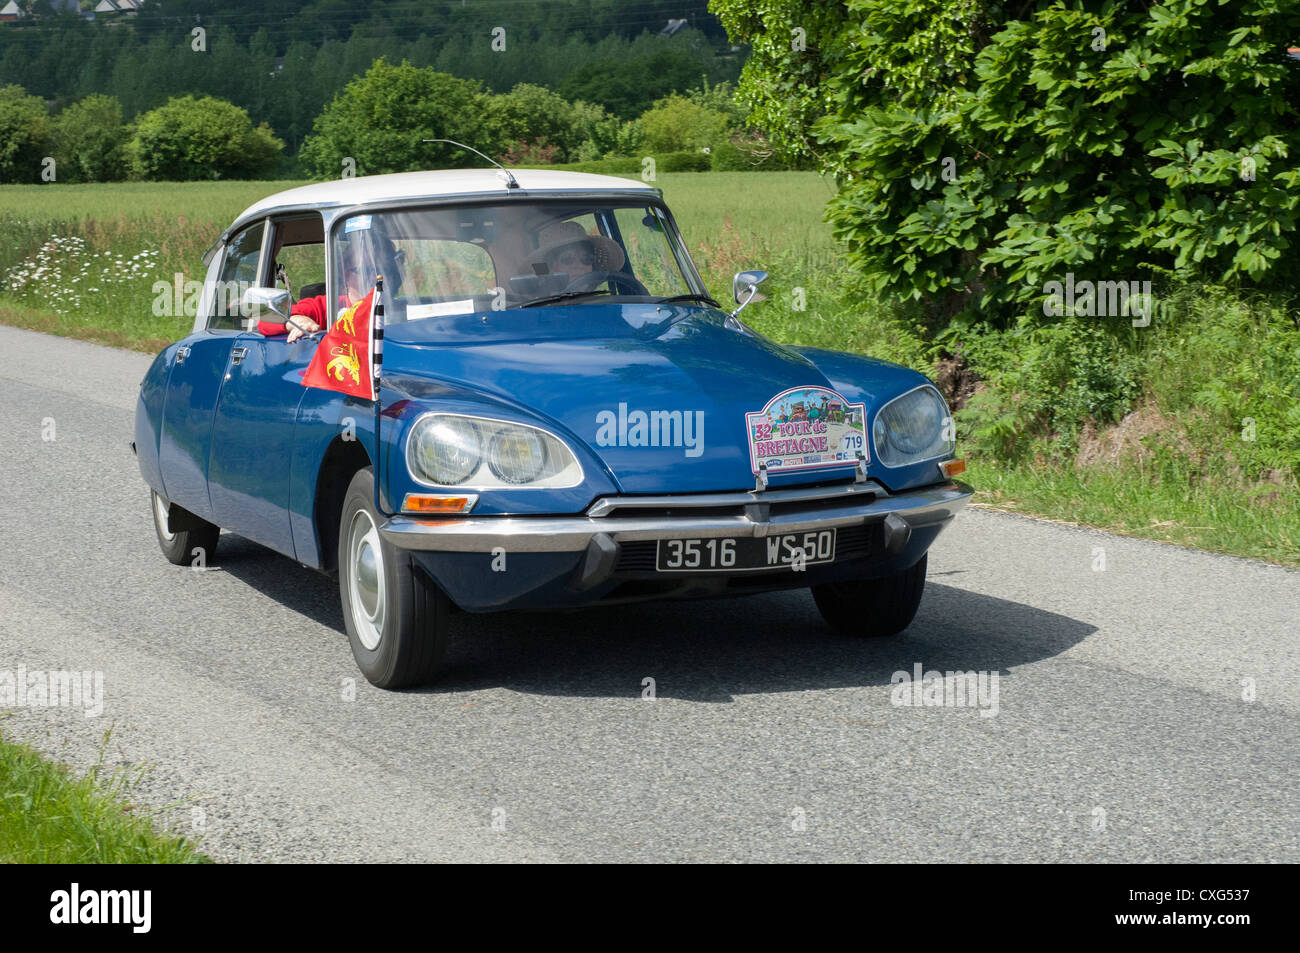 Citroen ID 19 of 1973 in the Tour de Bretagne, France, 2012 - Stock Image